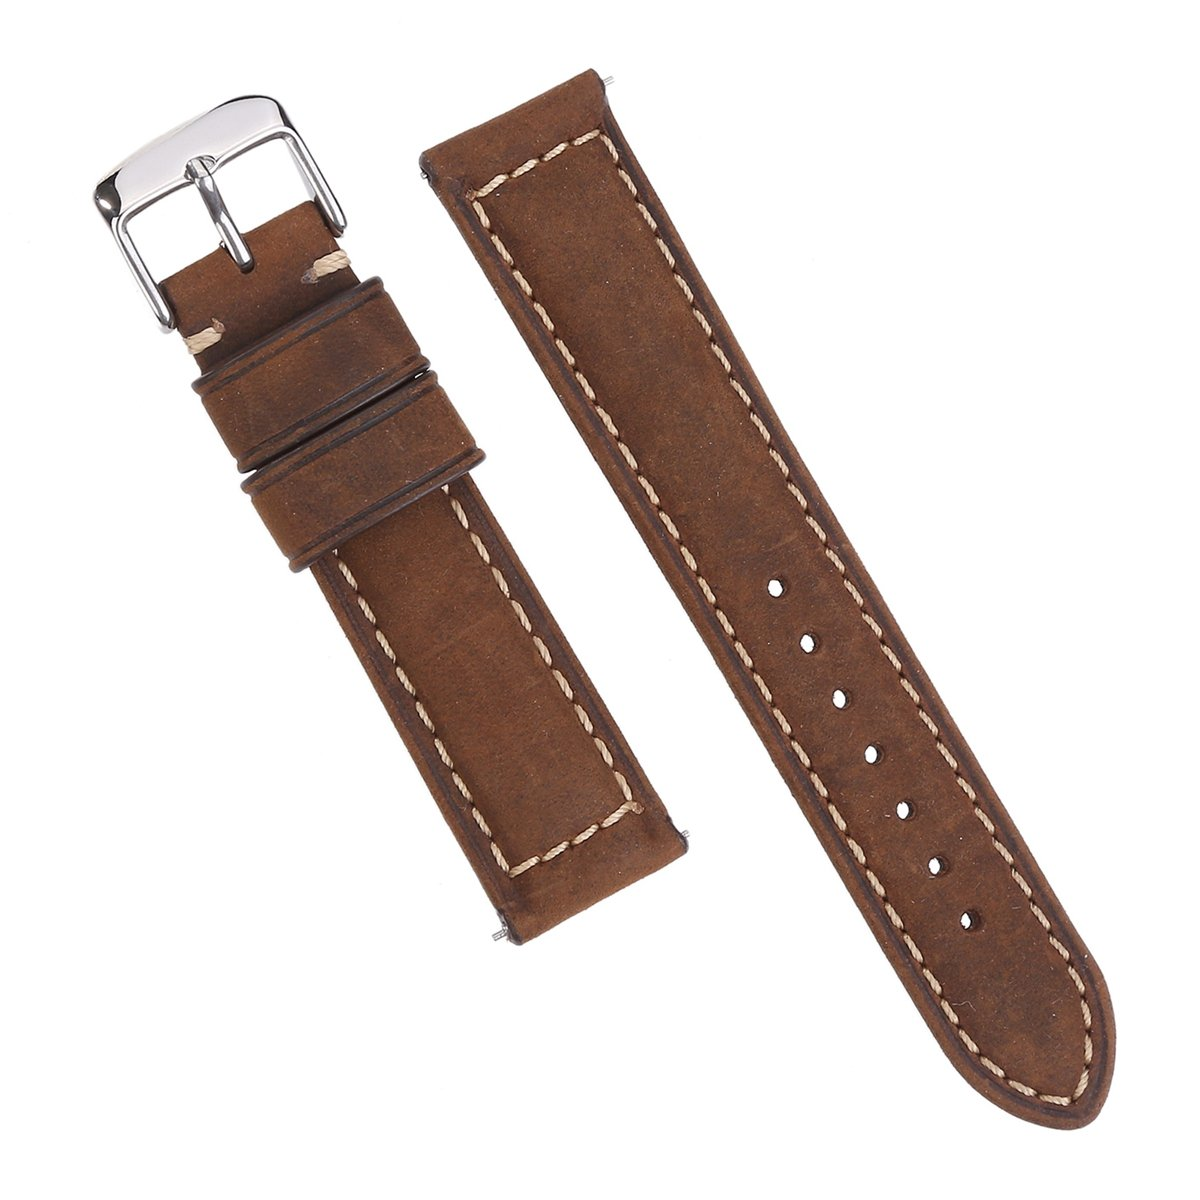 eache Genuine Leather Watch Band withクイックリリーススプリングバー(Moreカラー&サイズ) 20mm Crazy Horse Dark Brown 20mm|Crazy Horse Dark Brown Crazy Horse Dark Brown 20mm B07BSZZQZW